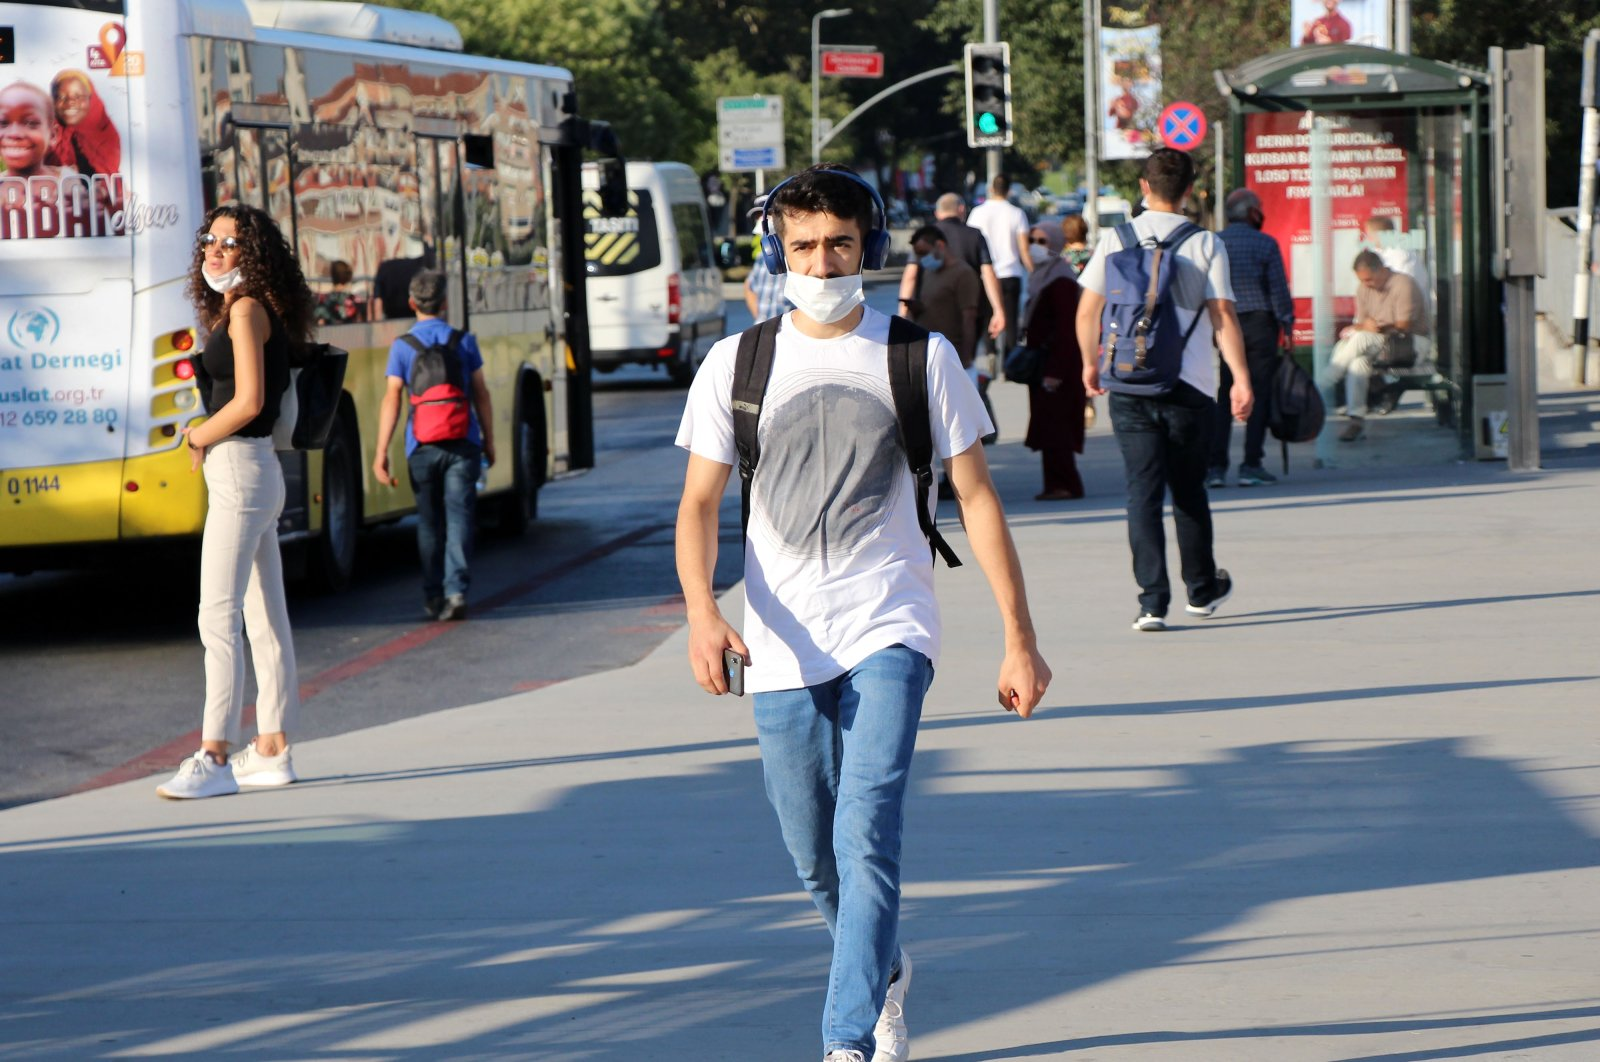 A man wearing a face mask walks on a street in Istanbul, Turkey, Aug. 4, 2020. (DHA Photo)